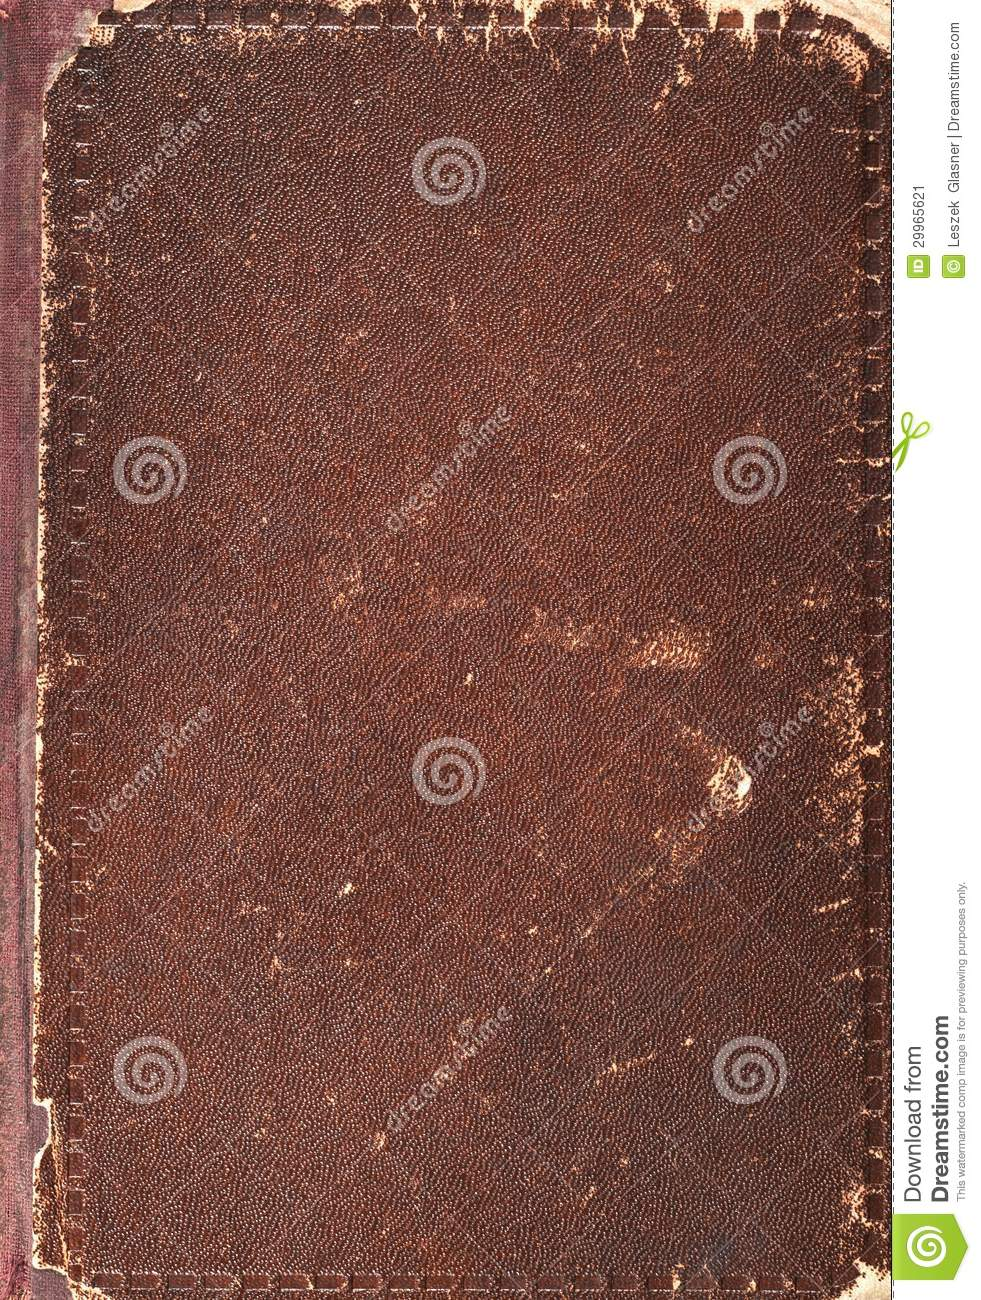 Book Cover Texture Ds Max : Old book cover texture brown leather and paper stock